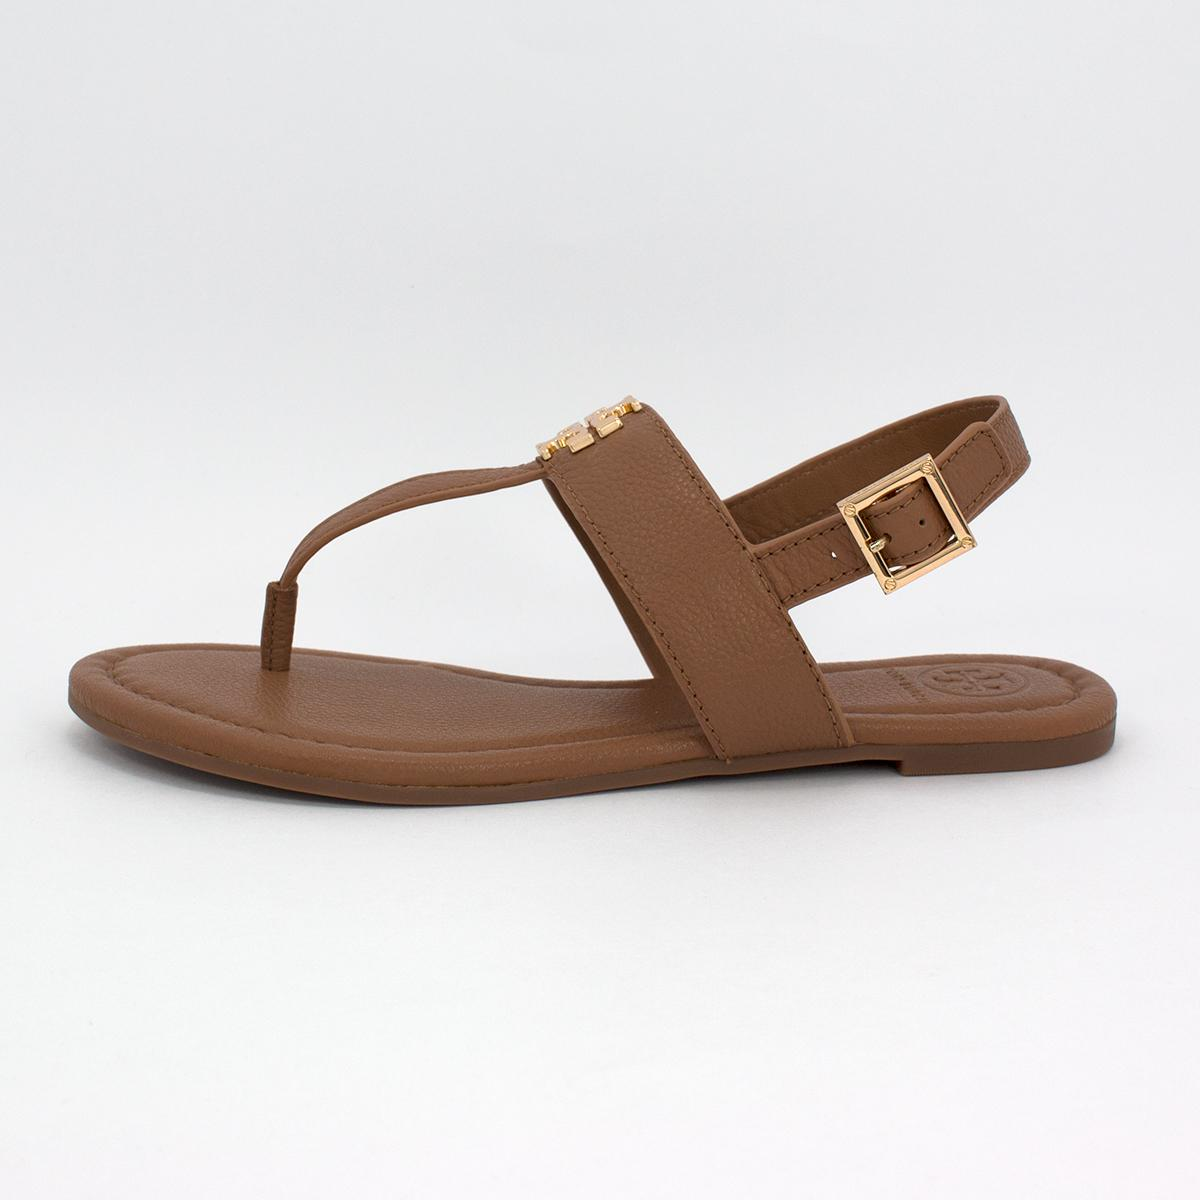 Tan And Gold Sandals